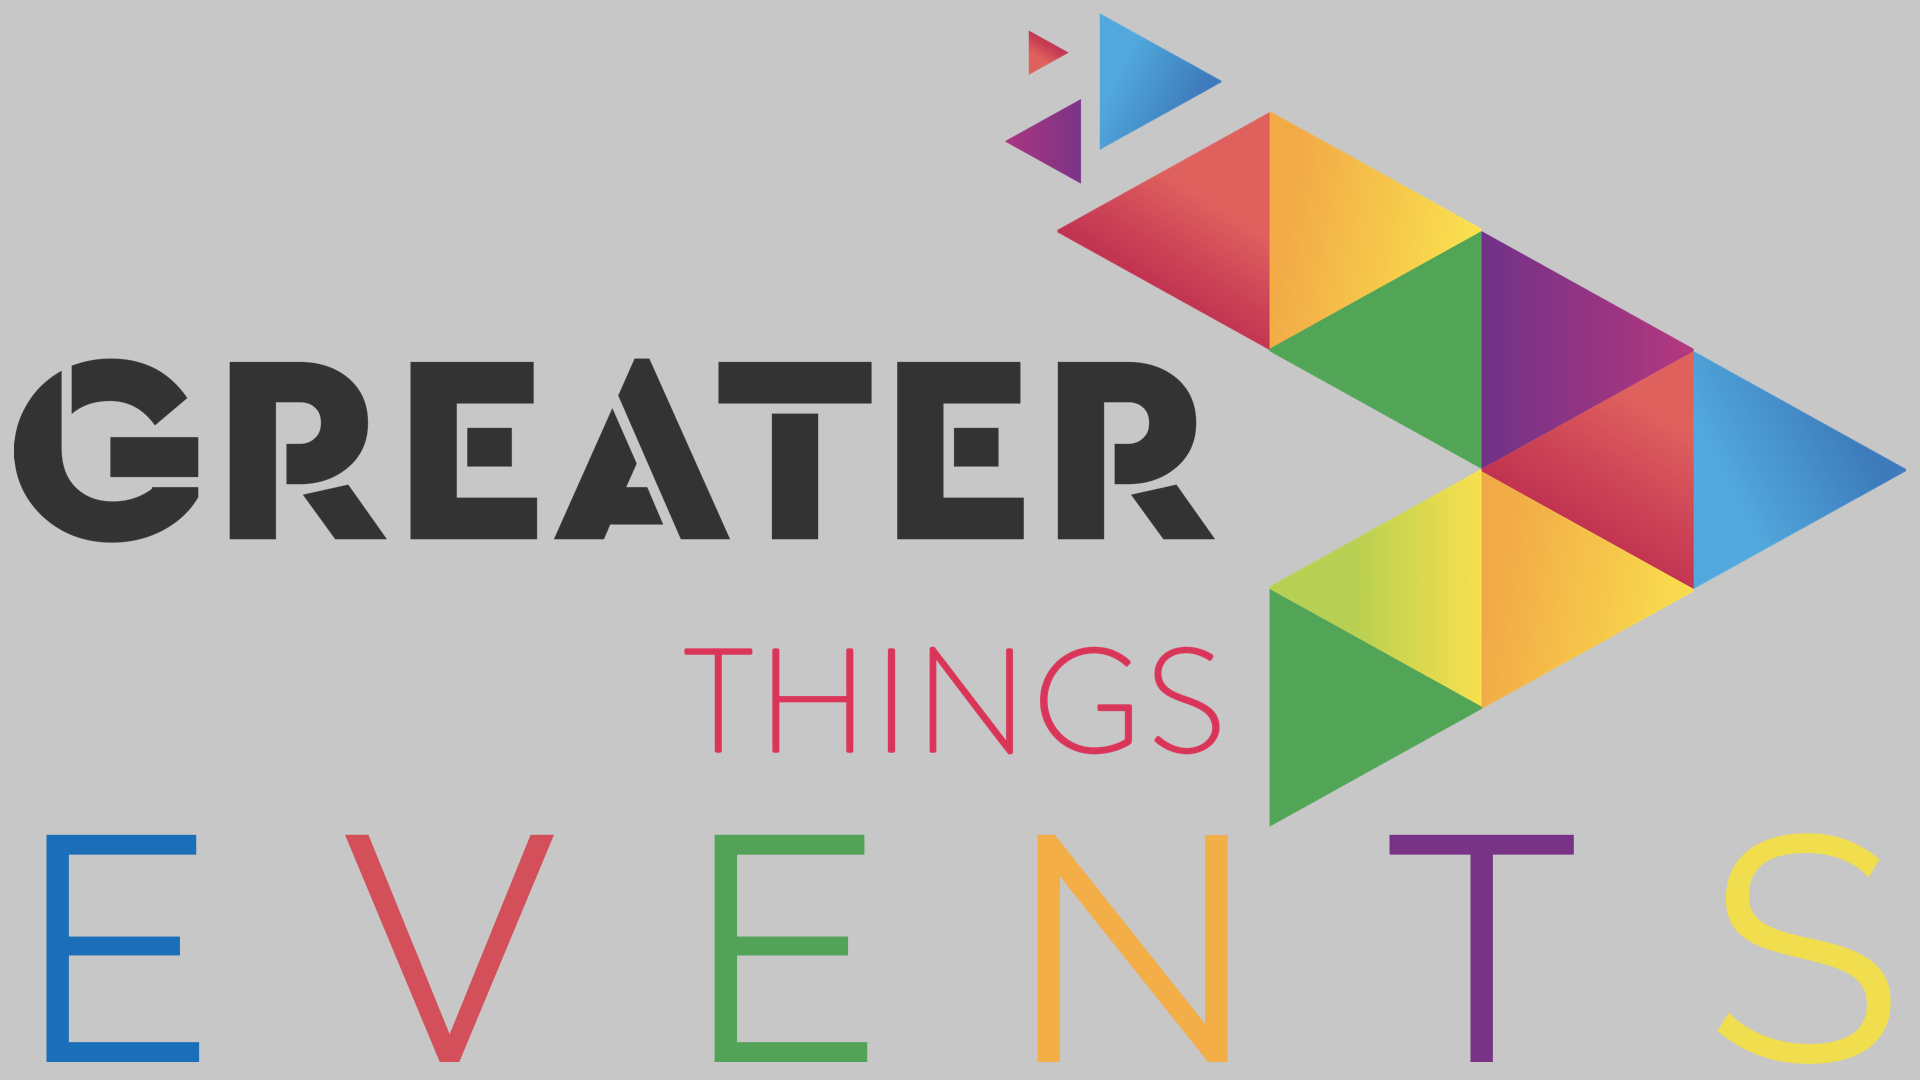 Greater Things offers innovative events around the country. Click here for a list of events and details.